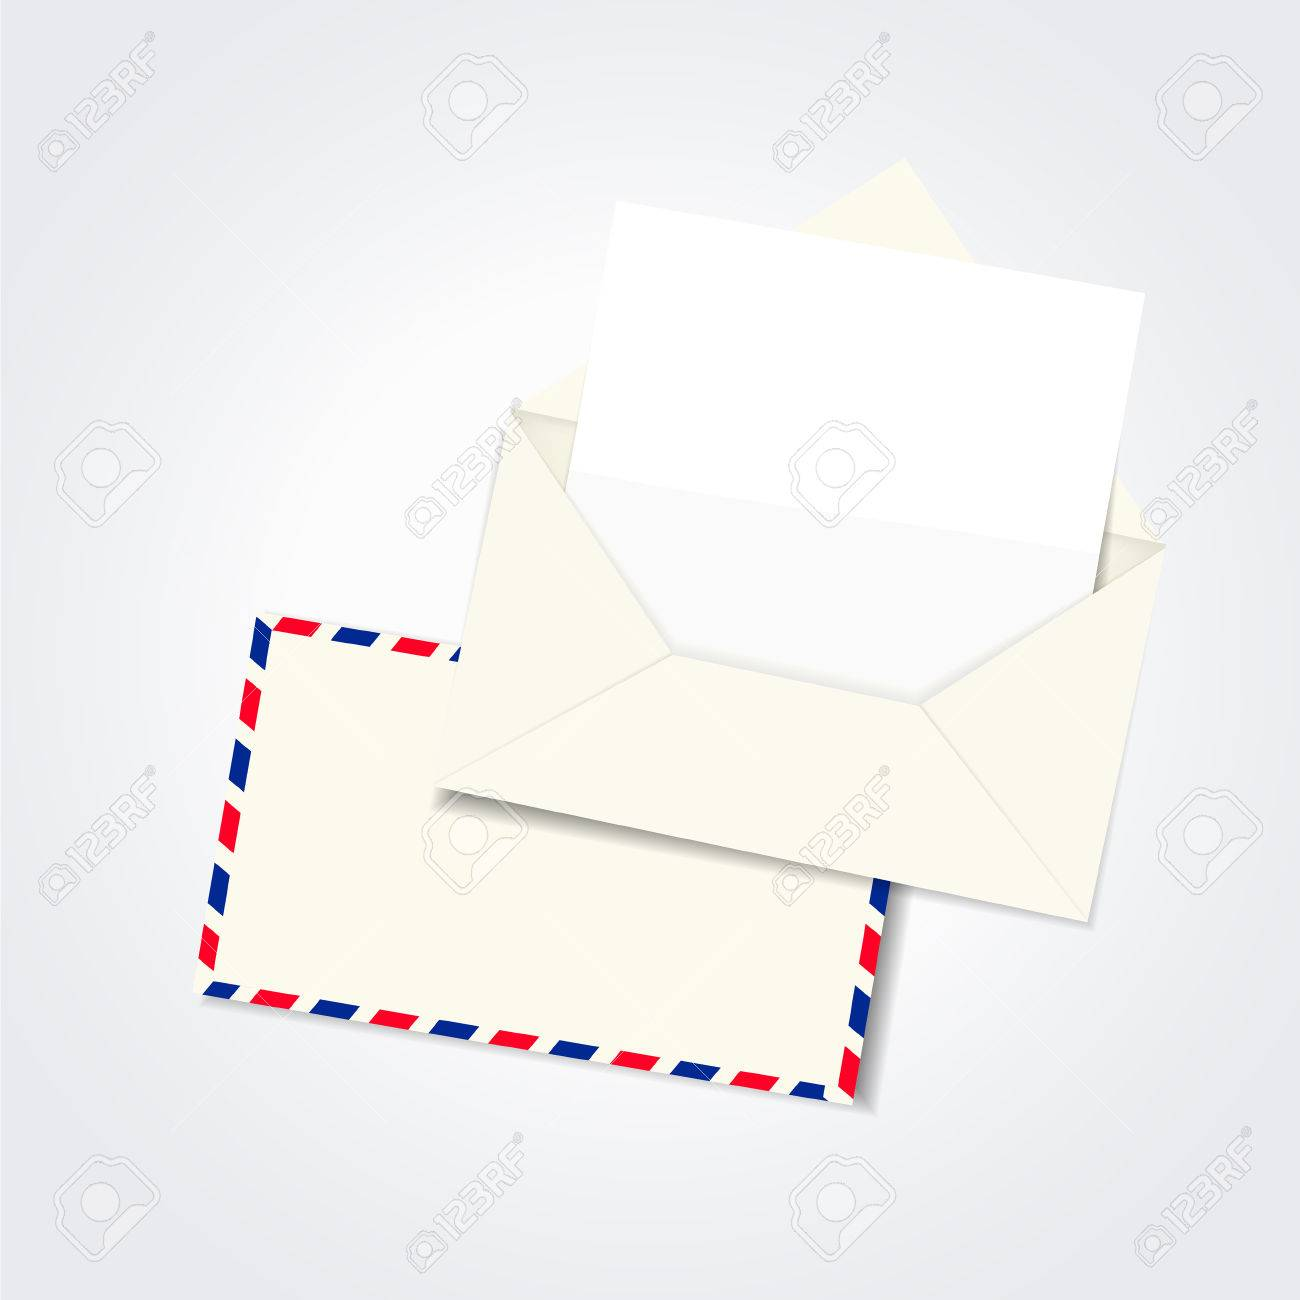 Blank Envelope And Letter Template Isolated On White Royalty Free